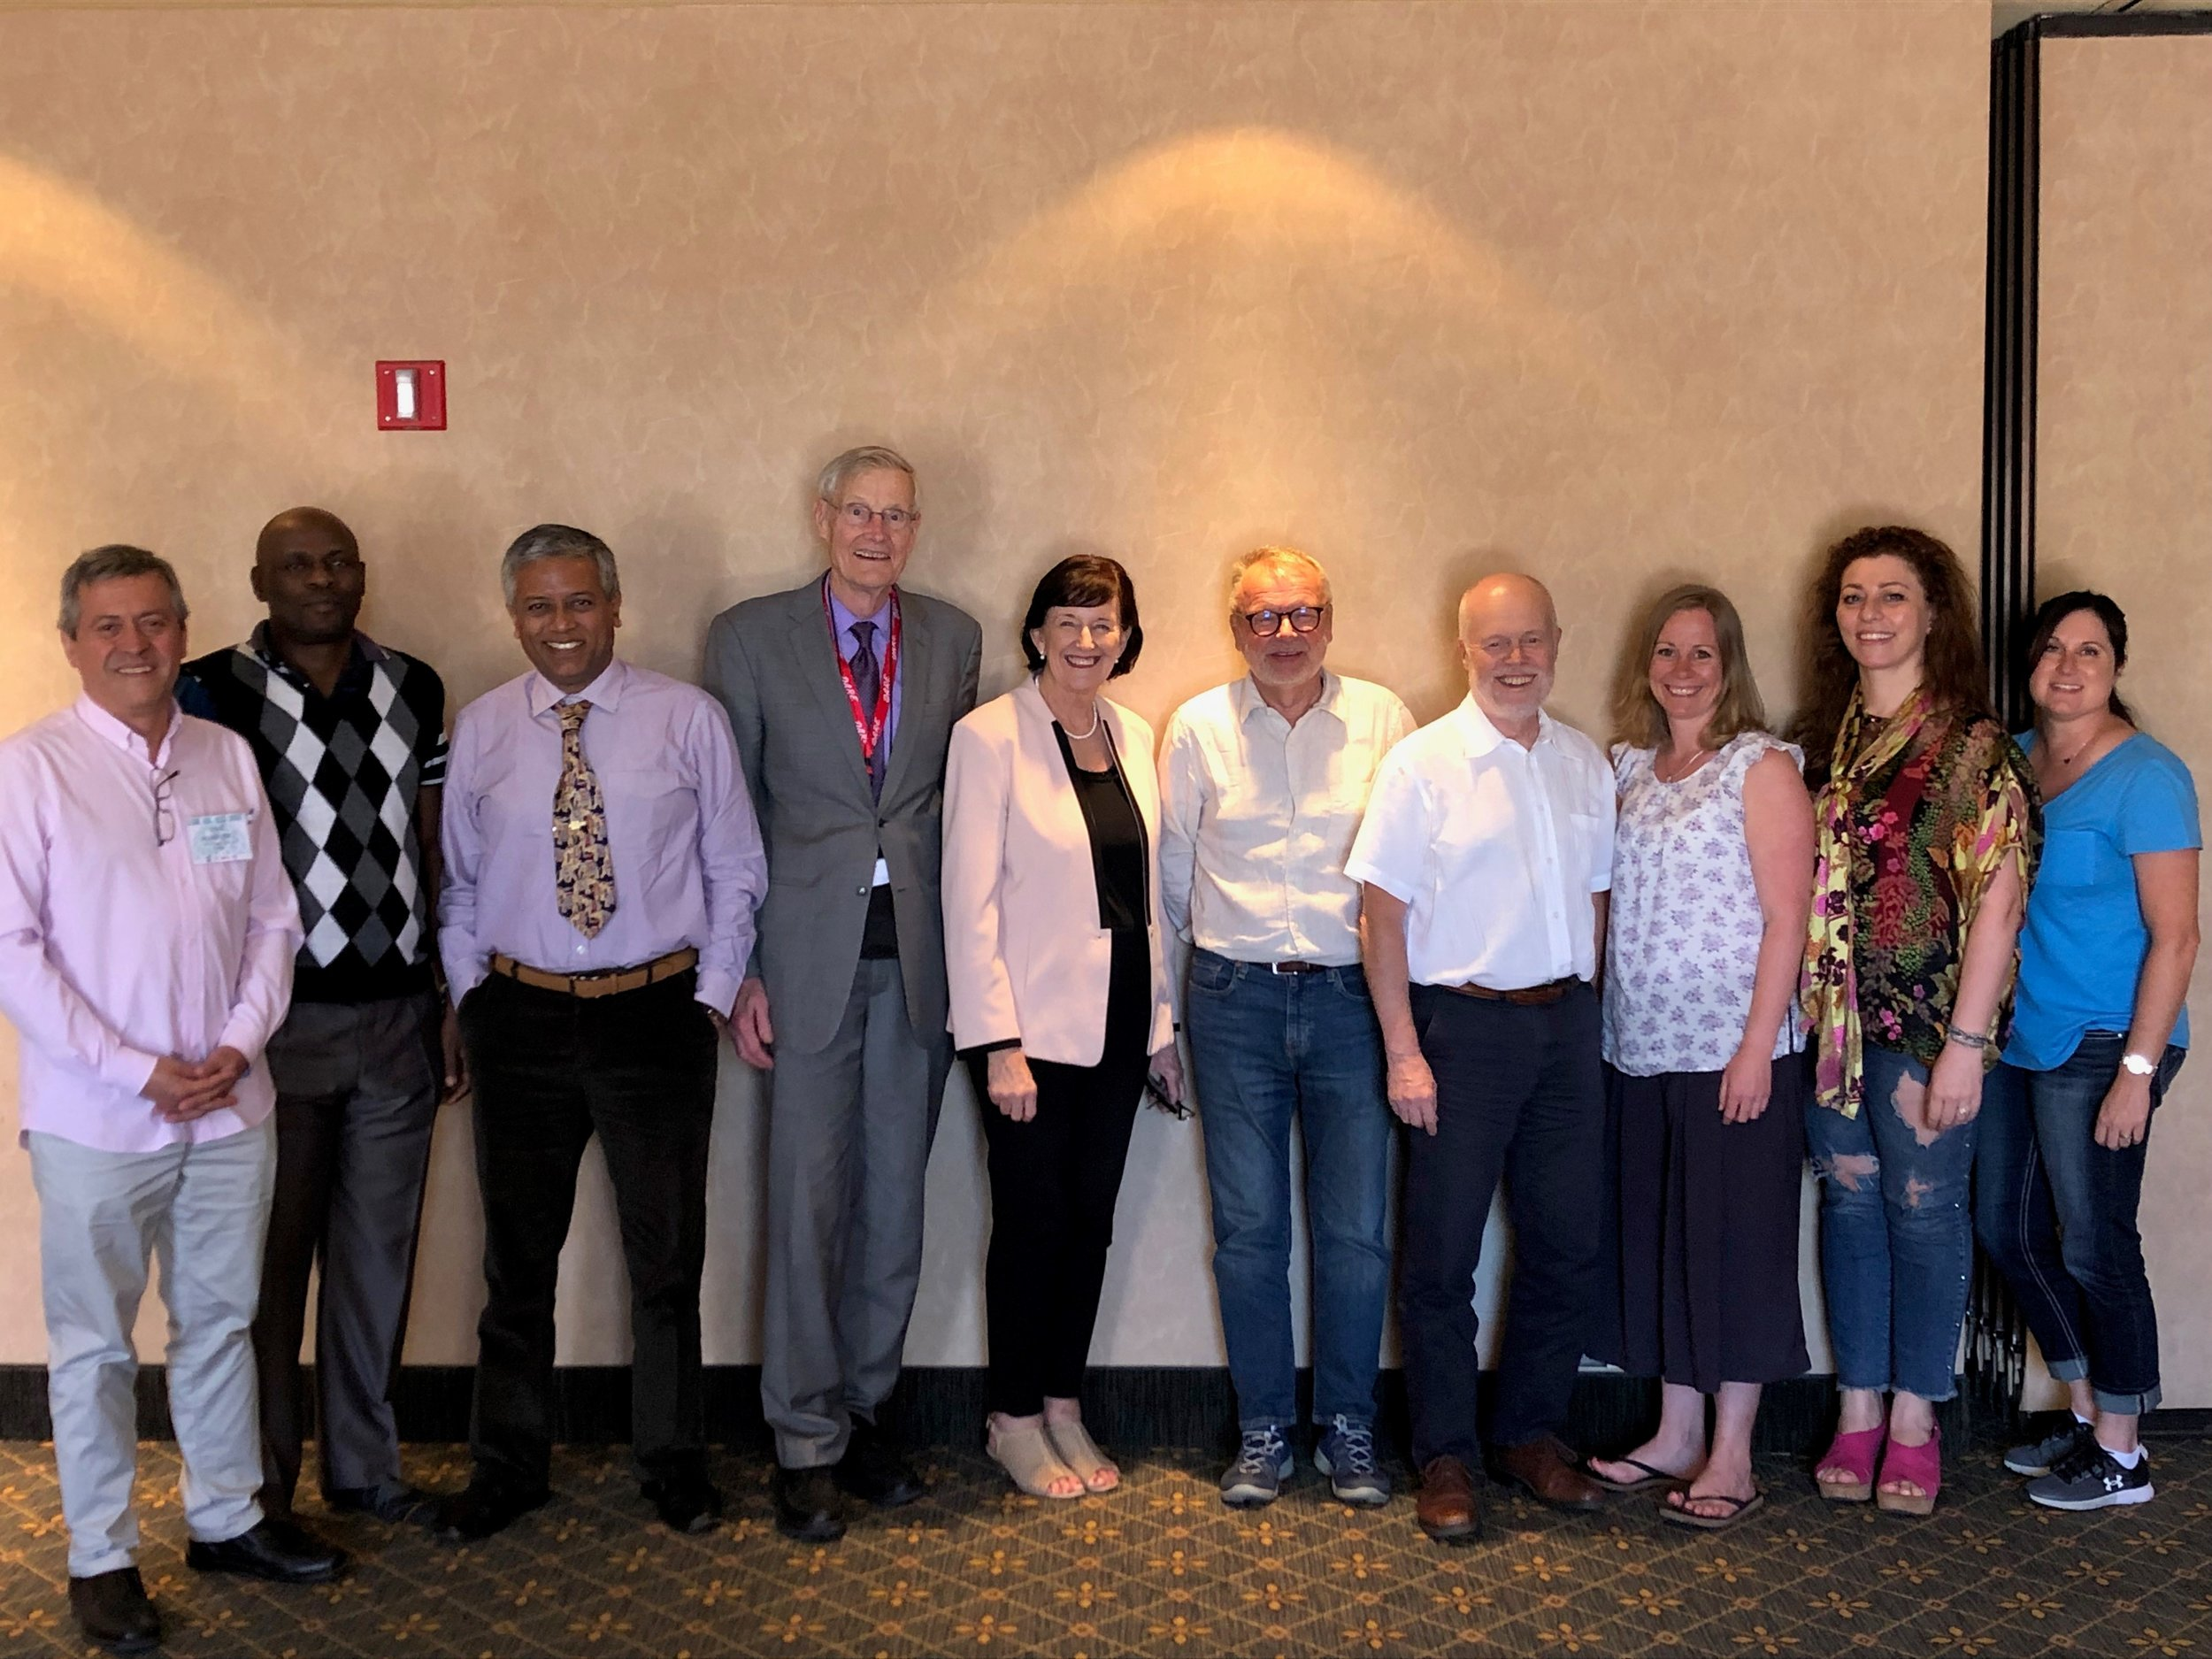 Members of the WFAD Board of Directors